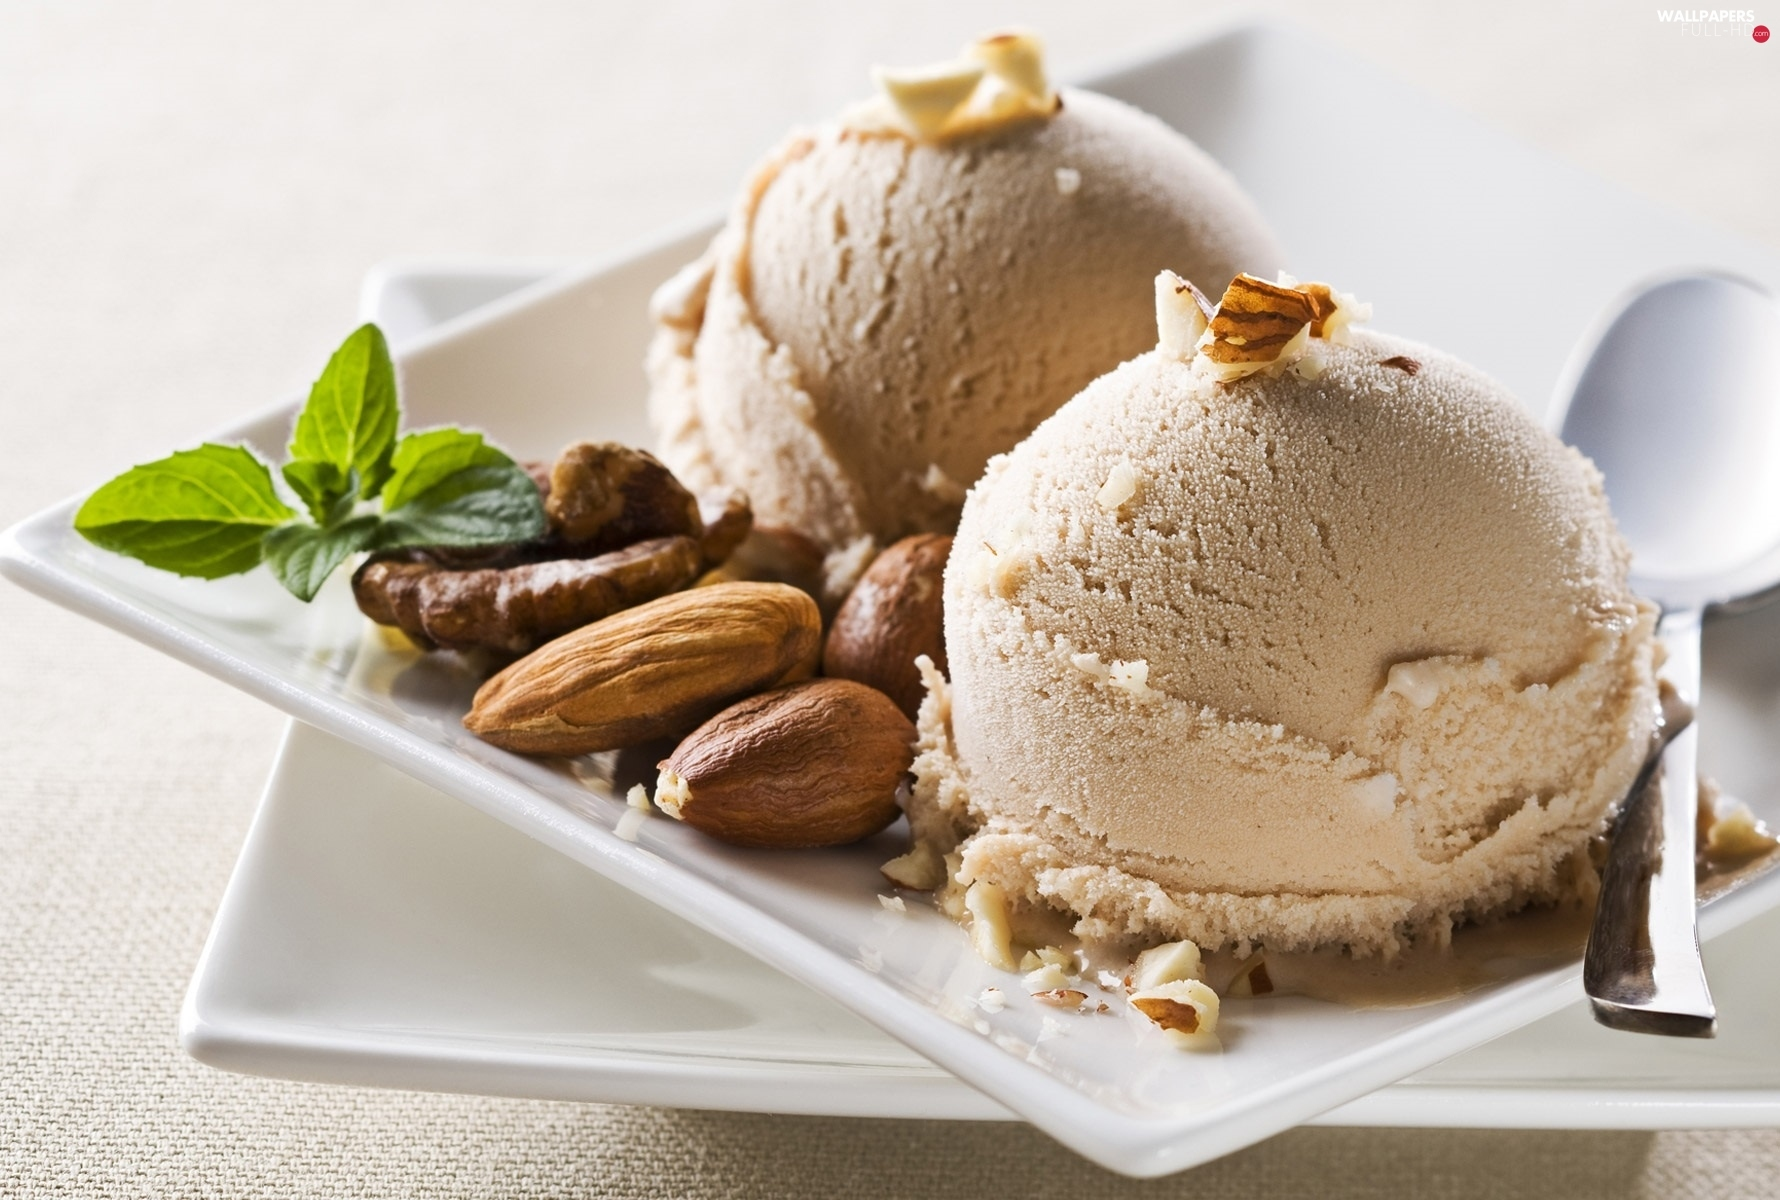 almonds, nuts, dessert, ice cream